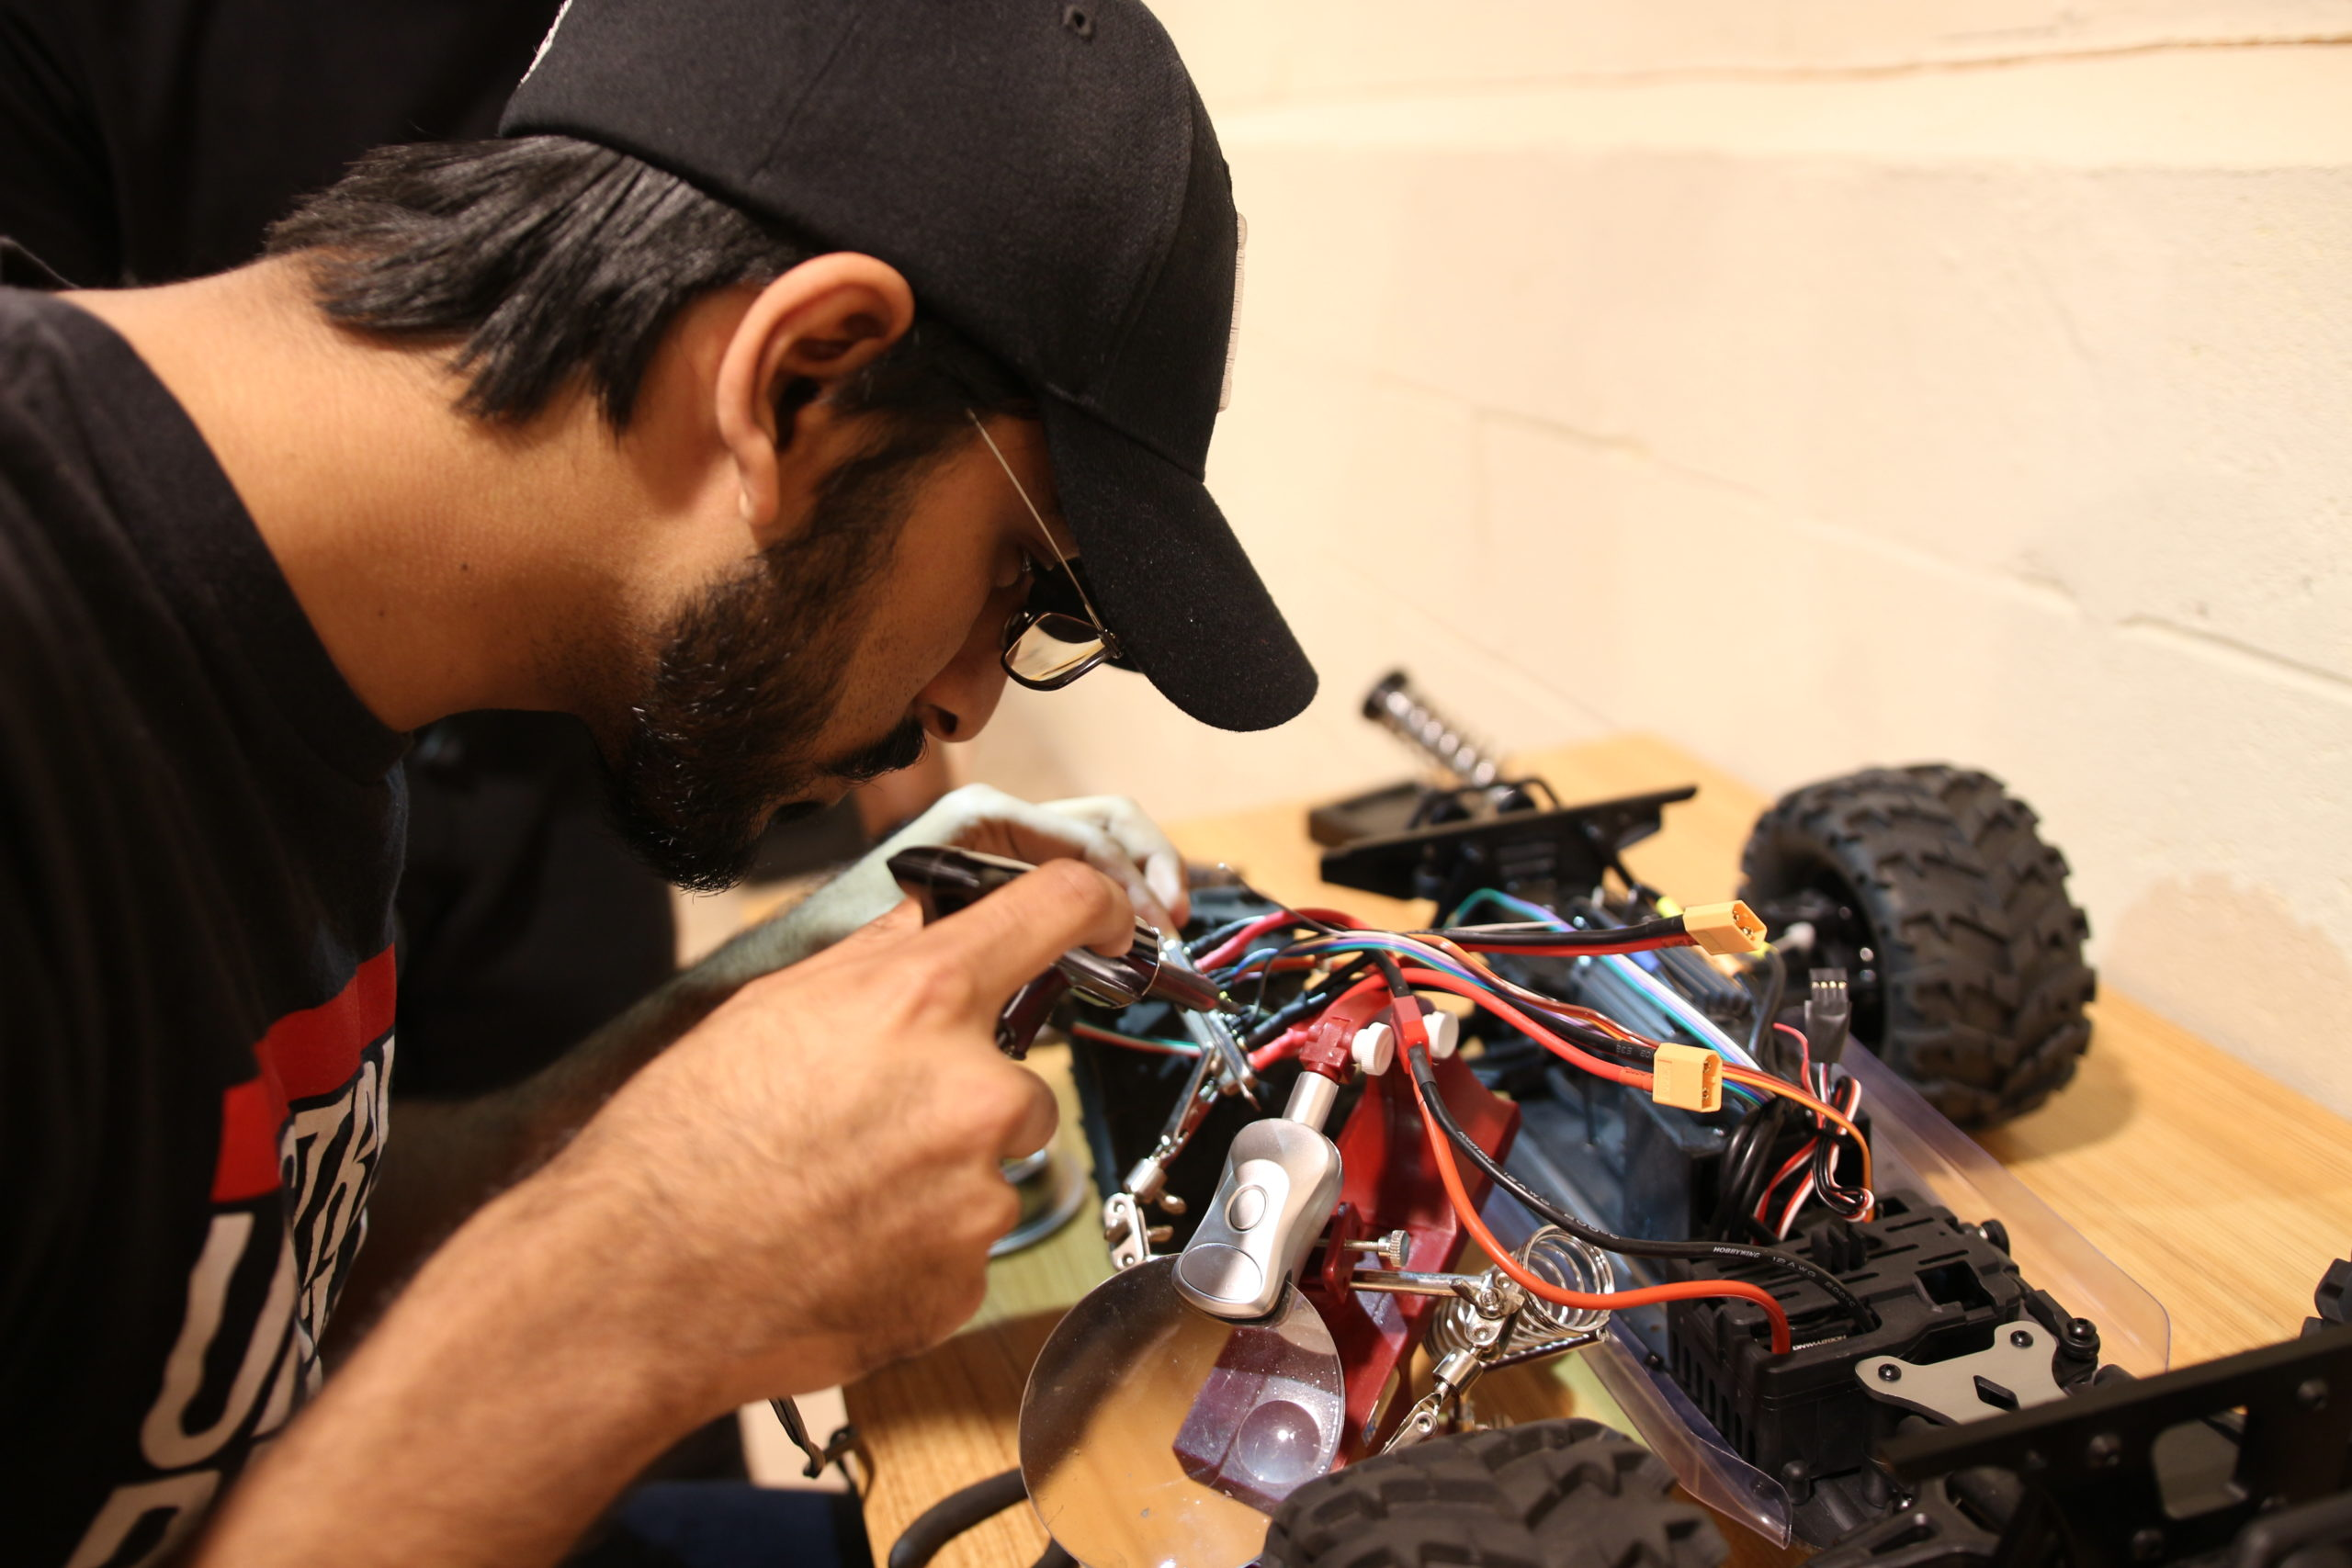 CTO of Aersys repairing Kiwibot, a delivery rover